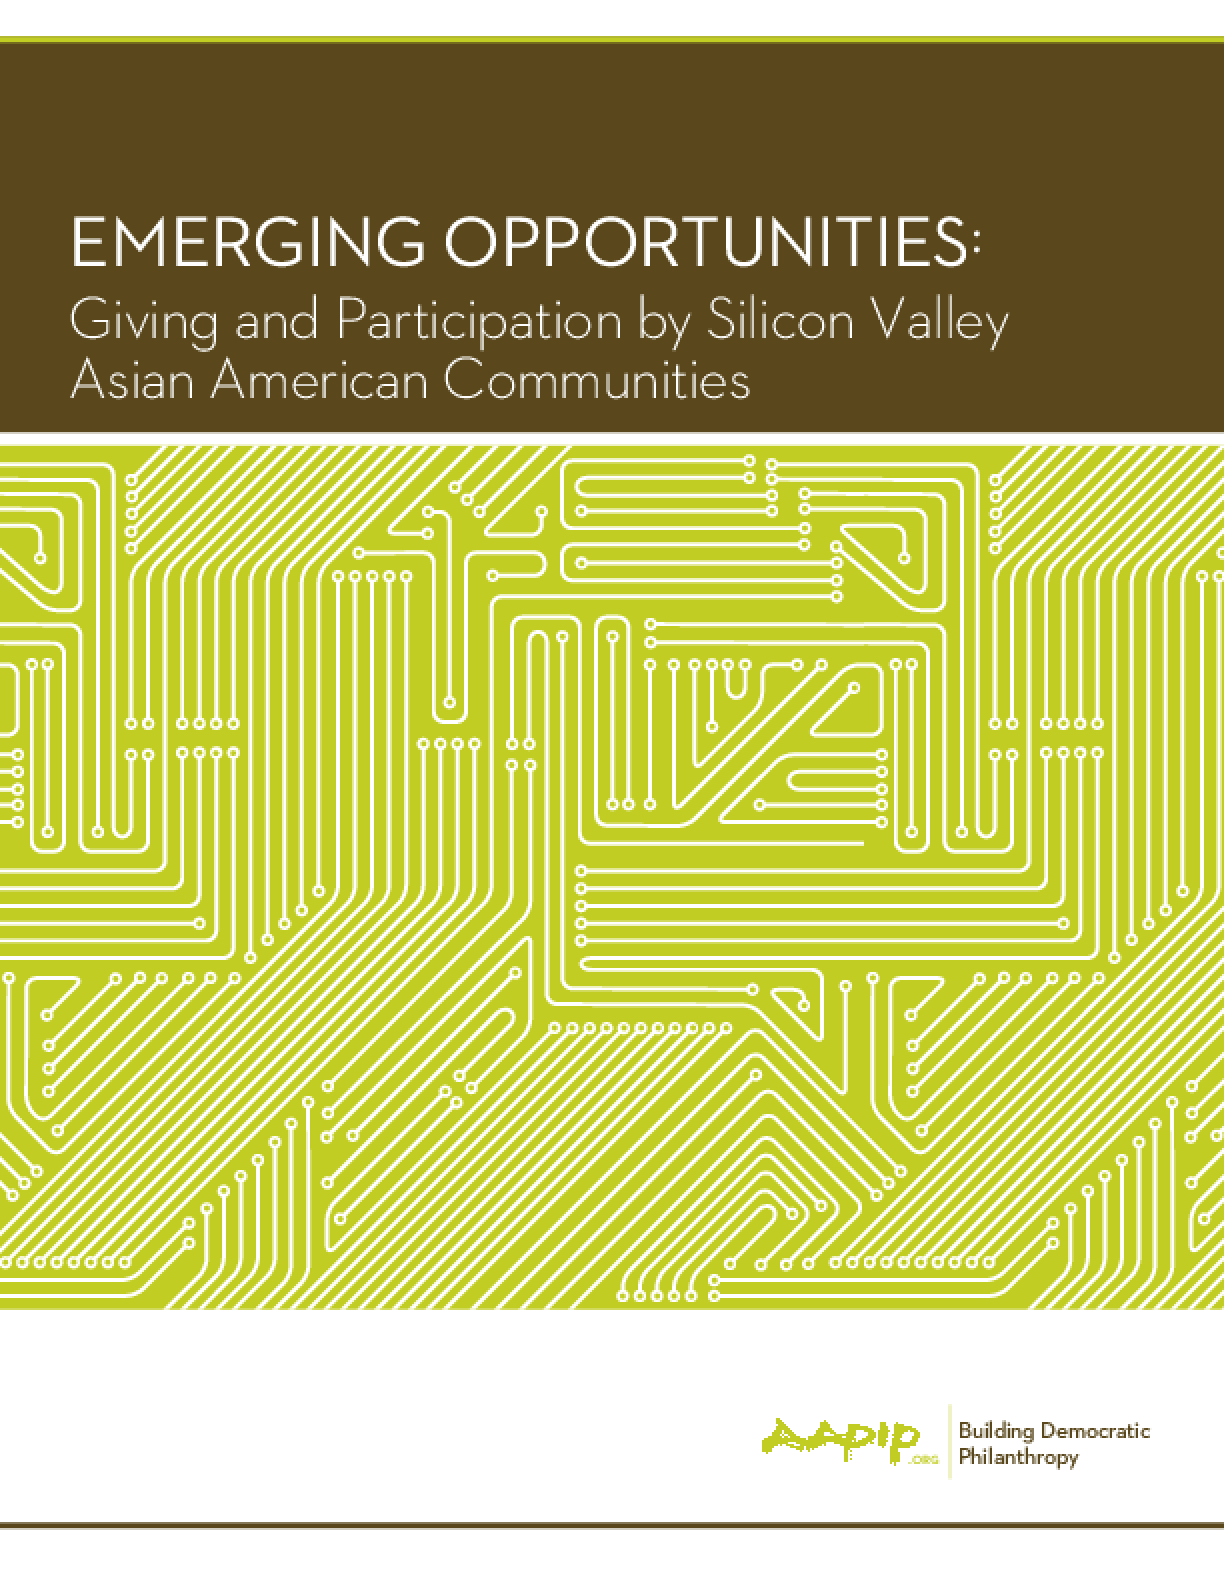 Emerging Opportunities: Giving and Participation by Silicon Valley Asian American Communities